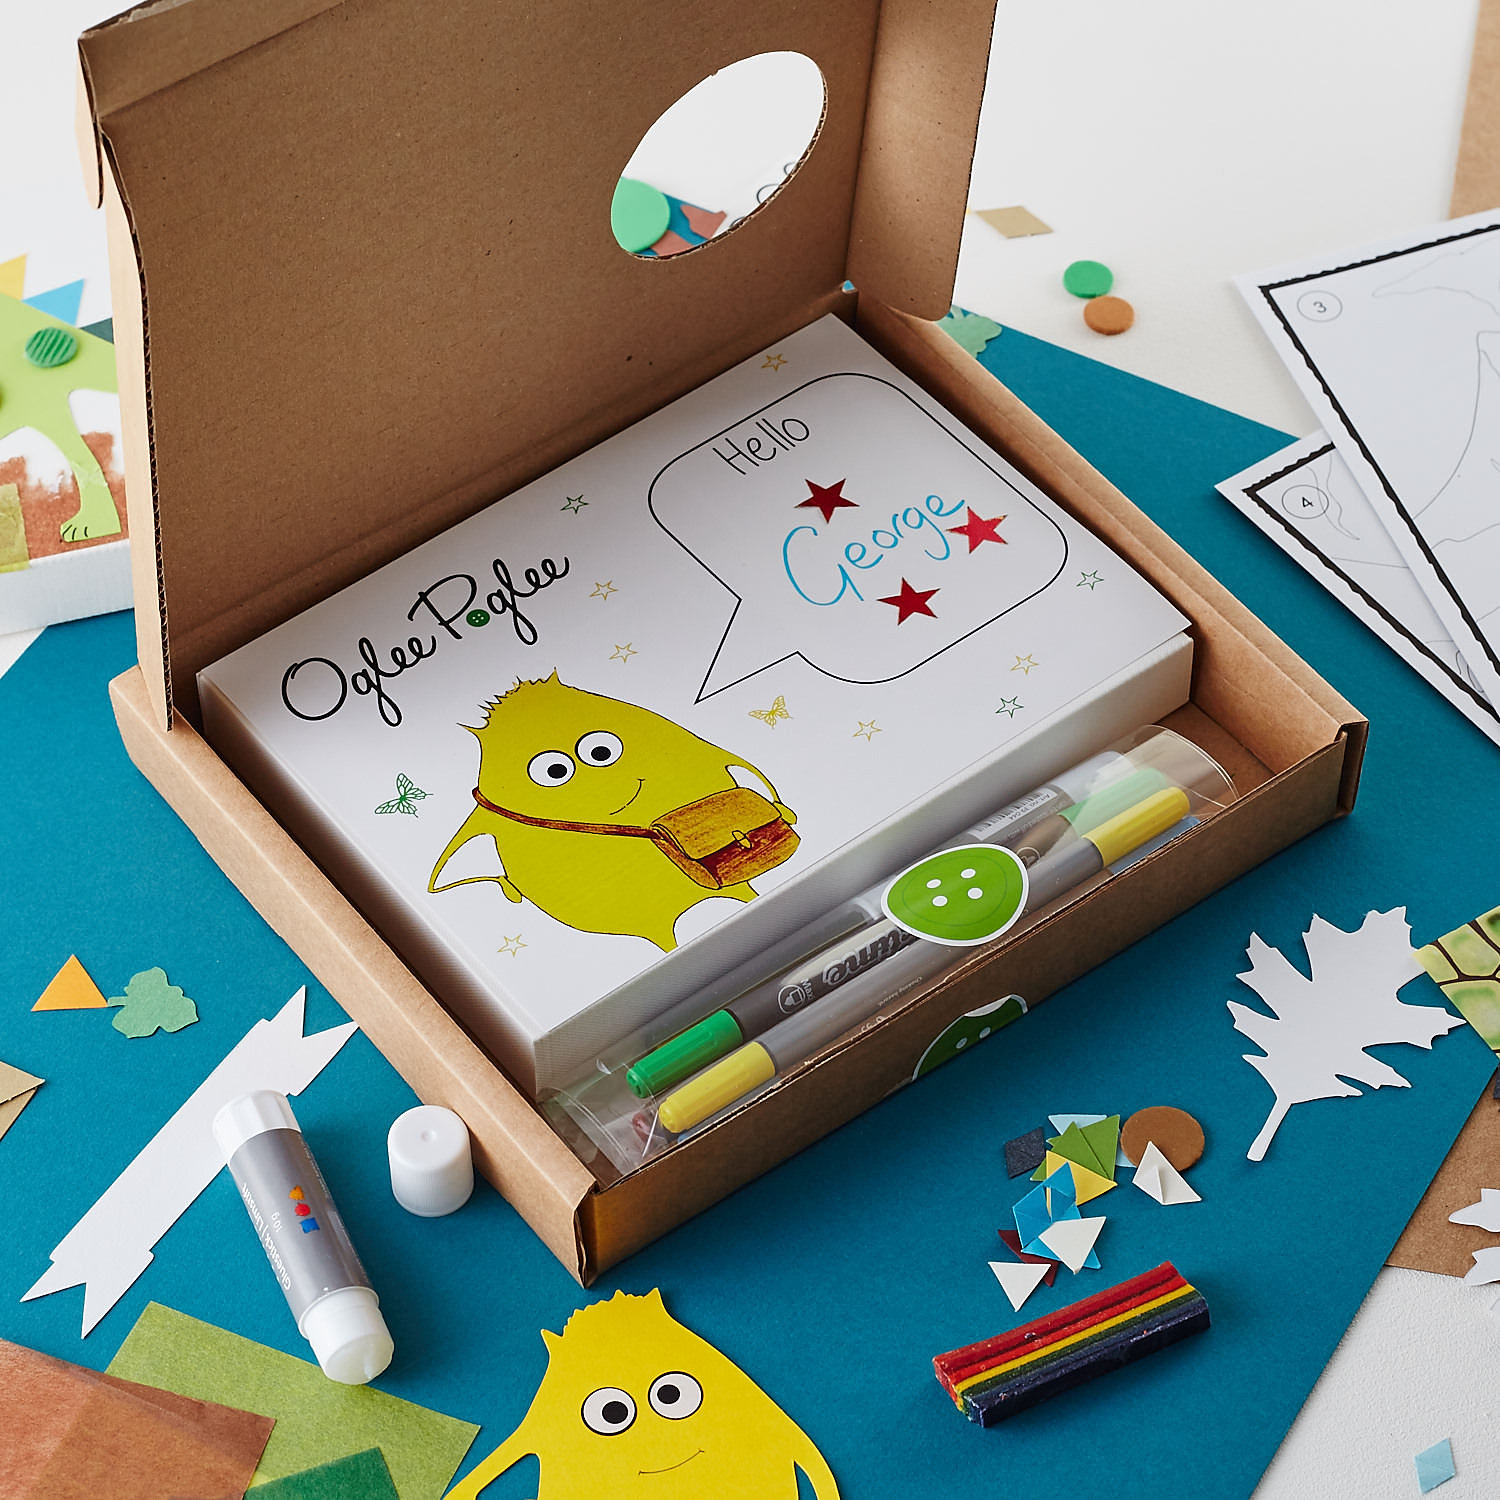 Oglee poglee children 39 s craft kits classes and parties for Craft kits for preschoolers